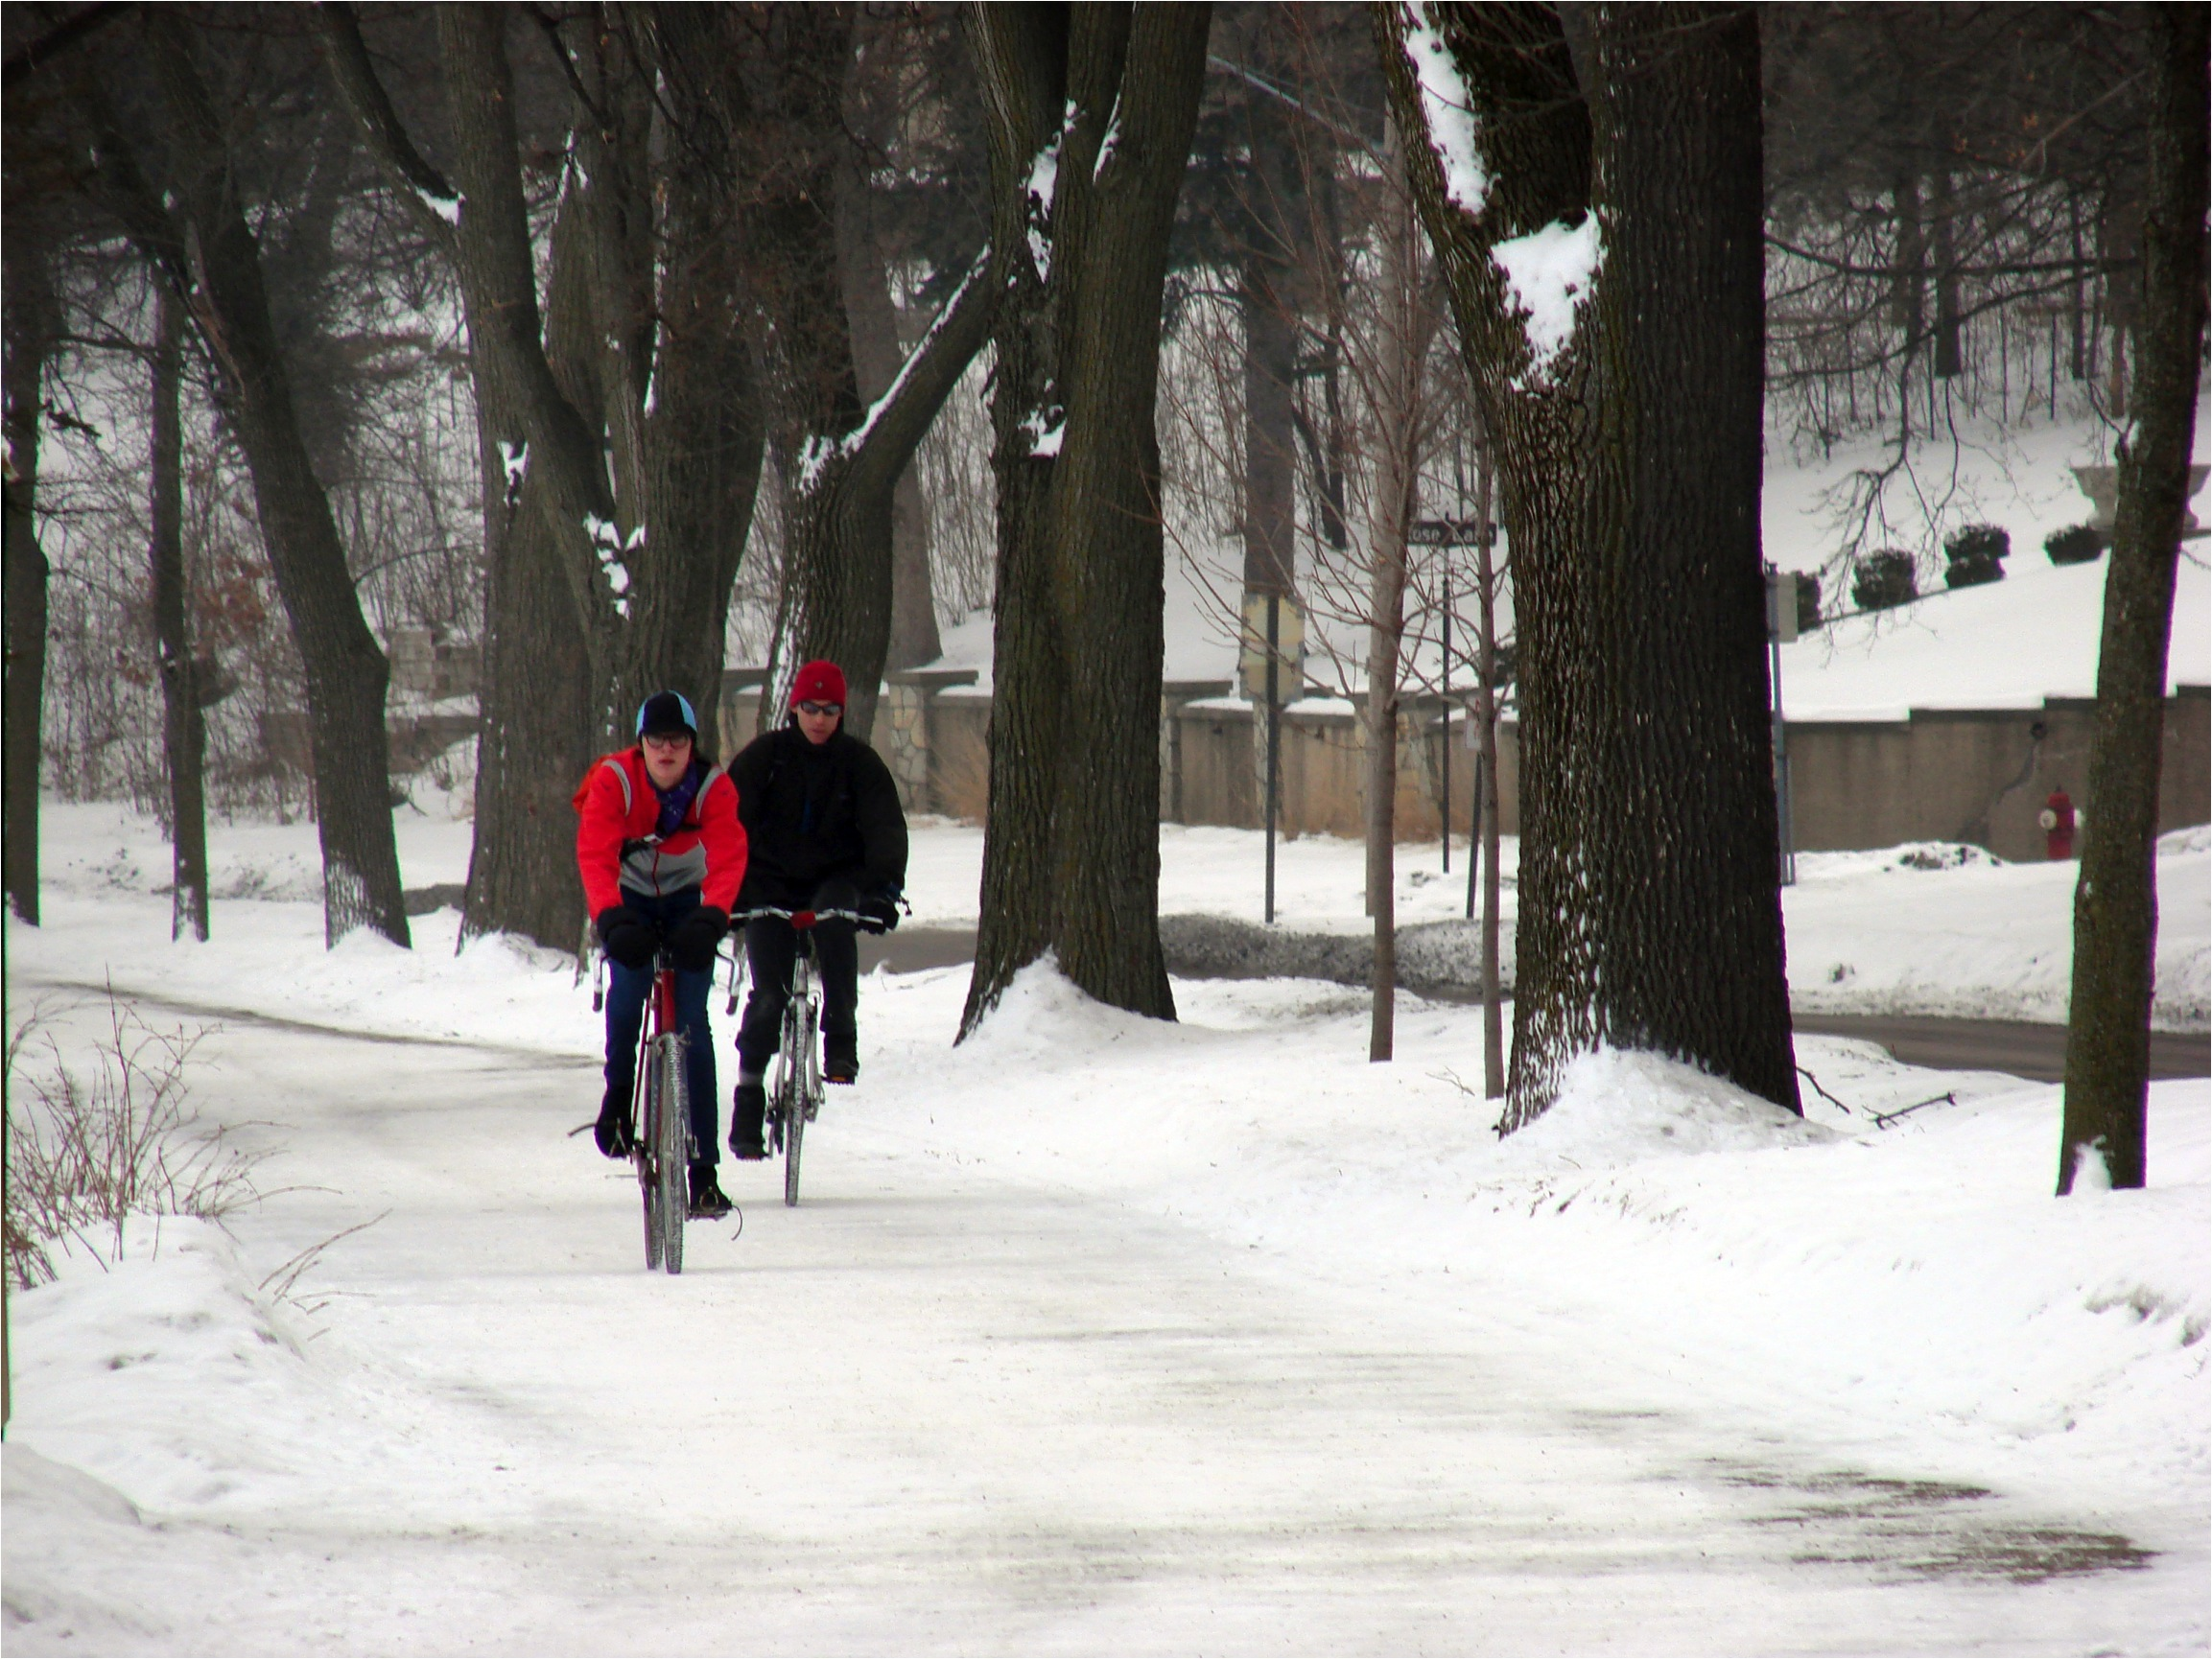 Average temperatures minneapolis - Despite An Average Winter Temperature